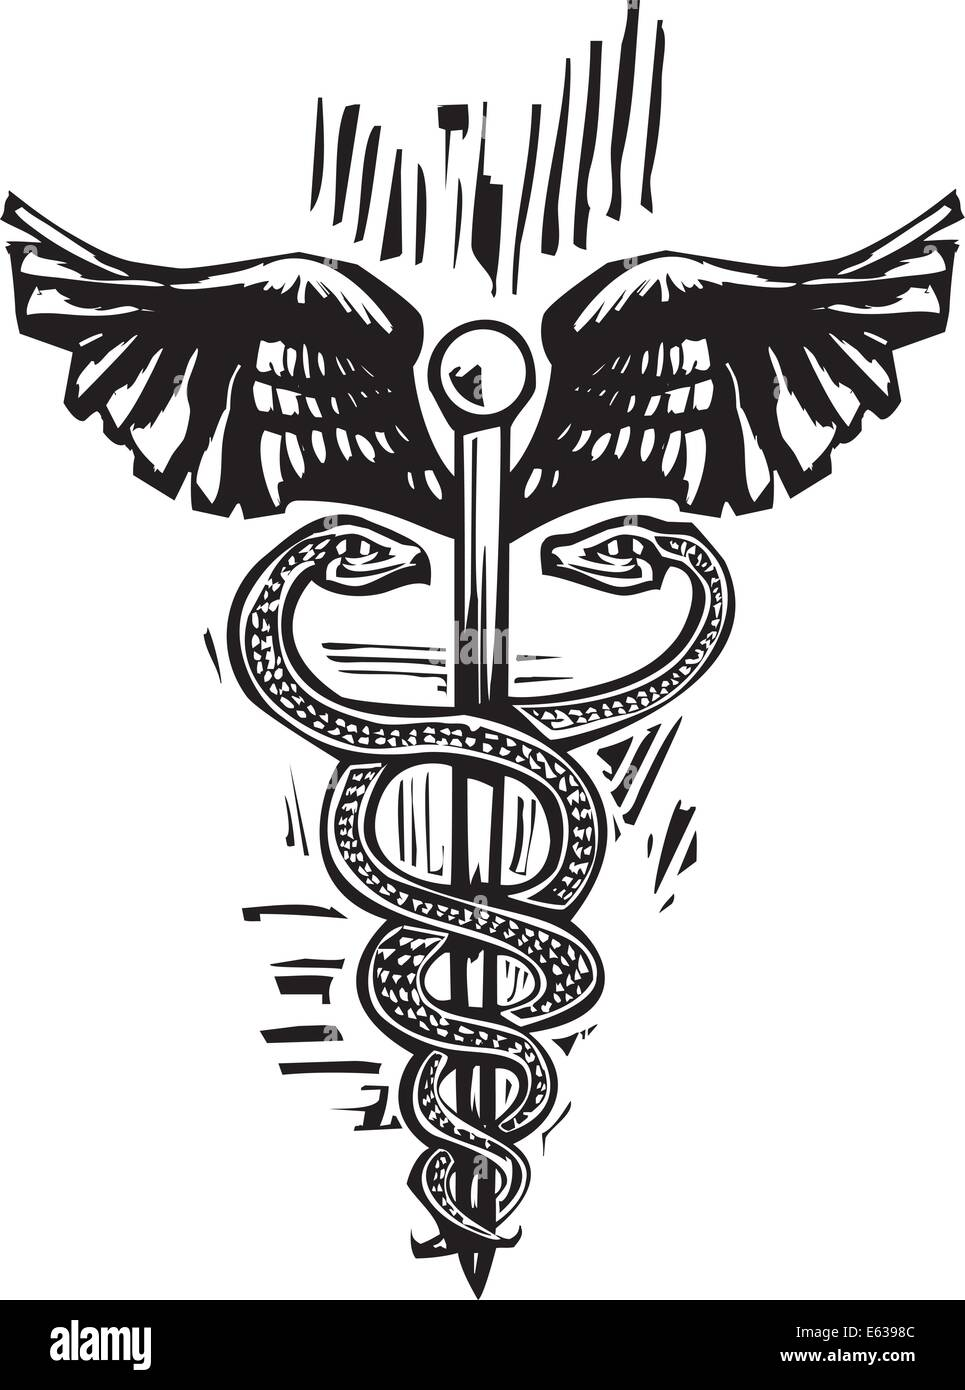 Woodcut image of the Caduceus the snake entwined staff carried by Hermes in Greek mythology and is the symbol of - Stock Vector